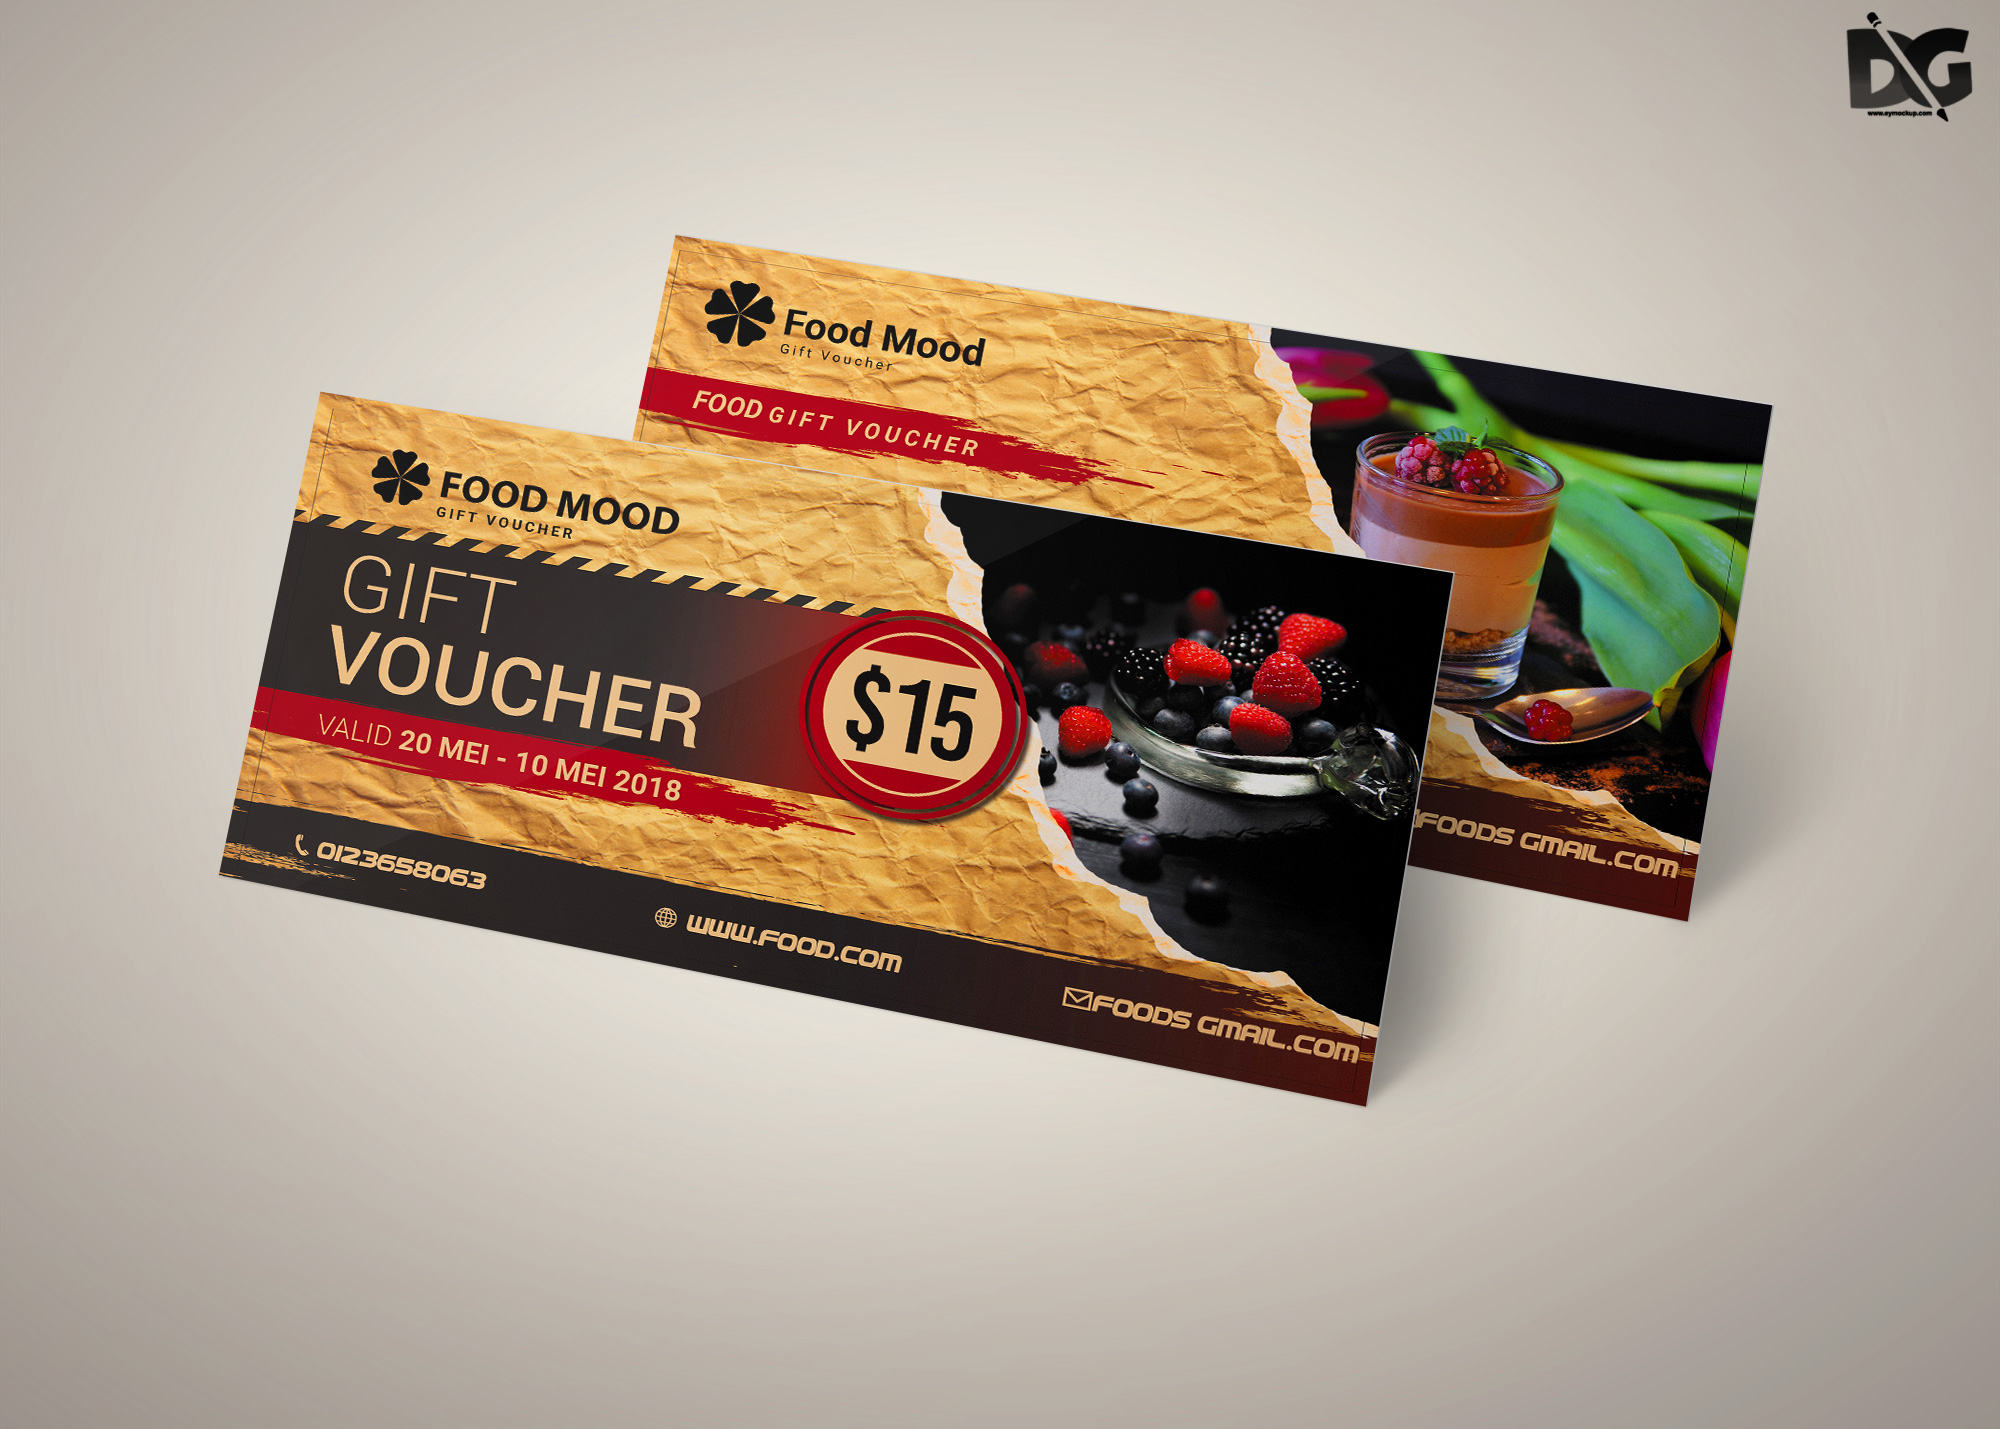 Free Download Food Mood PSD Gift Card Template